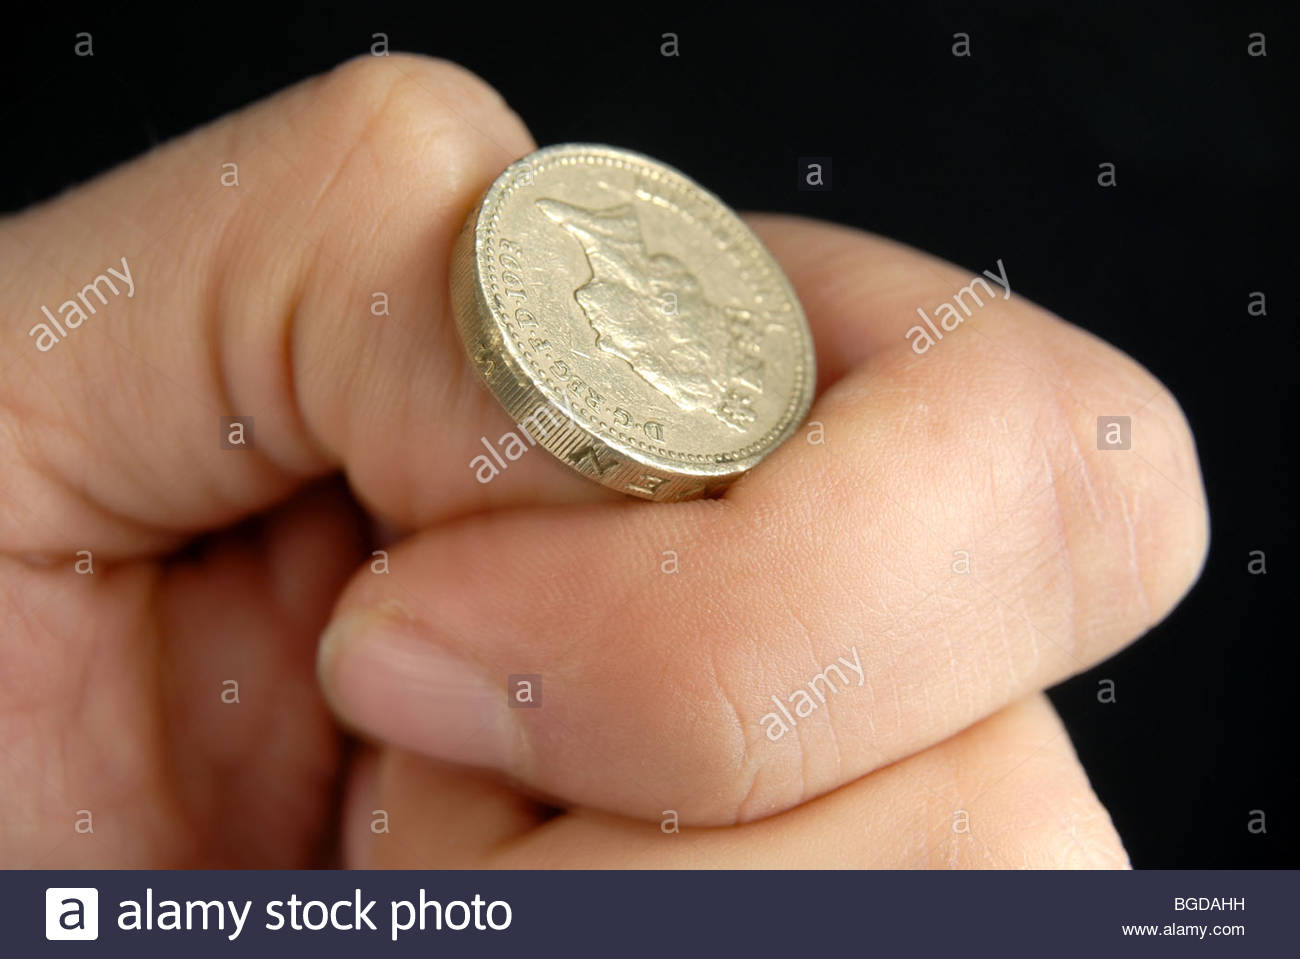 Flipping a UK pound coin. - Stock Image